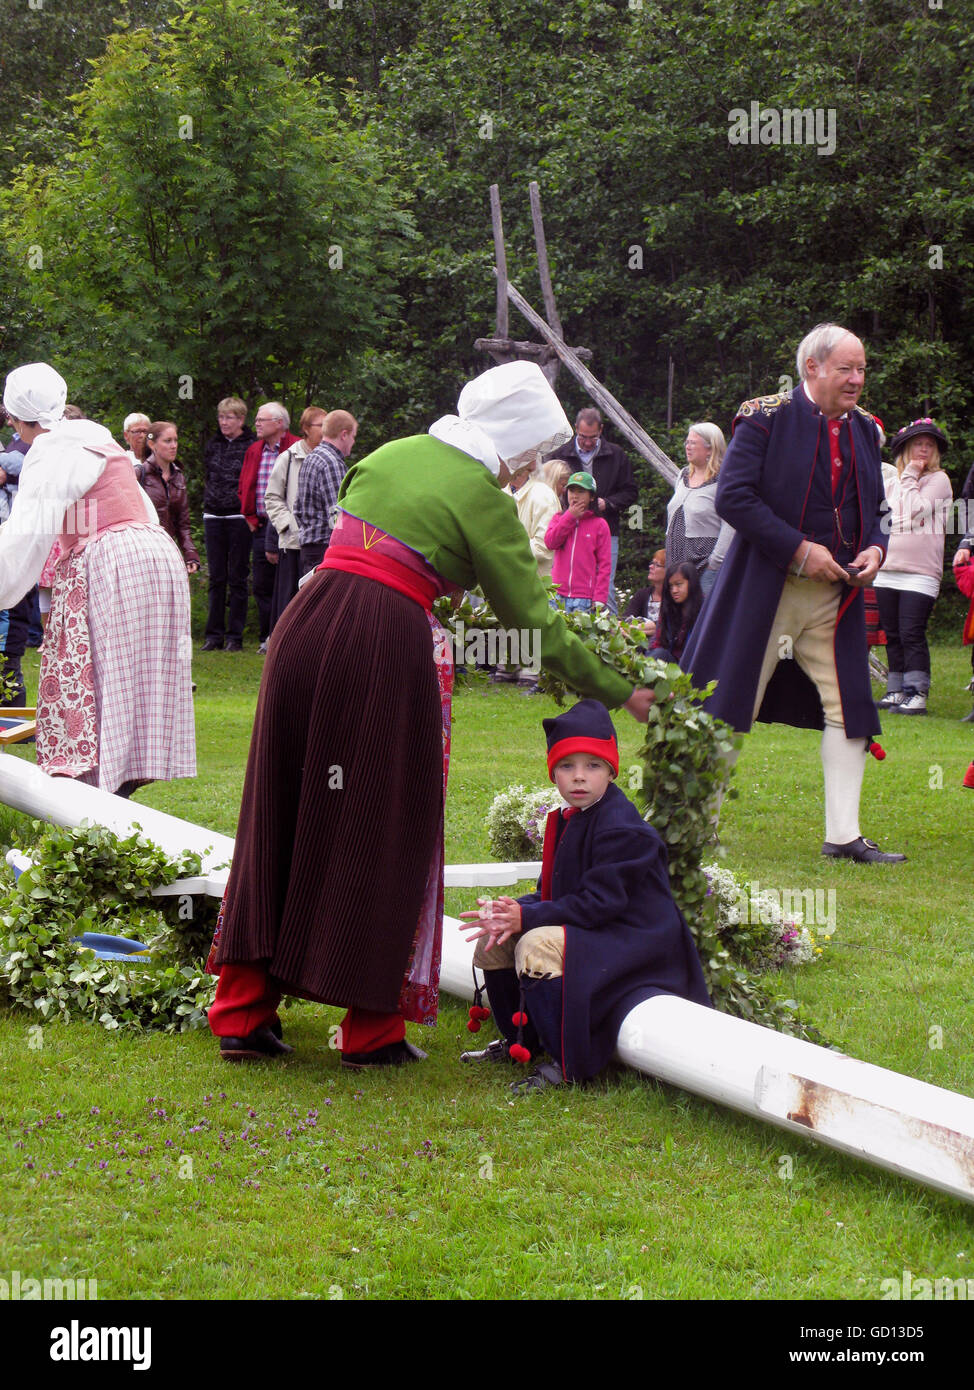 MIDSUMMER people of all age in costumes preparing the festivities - Stock Image